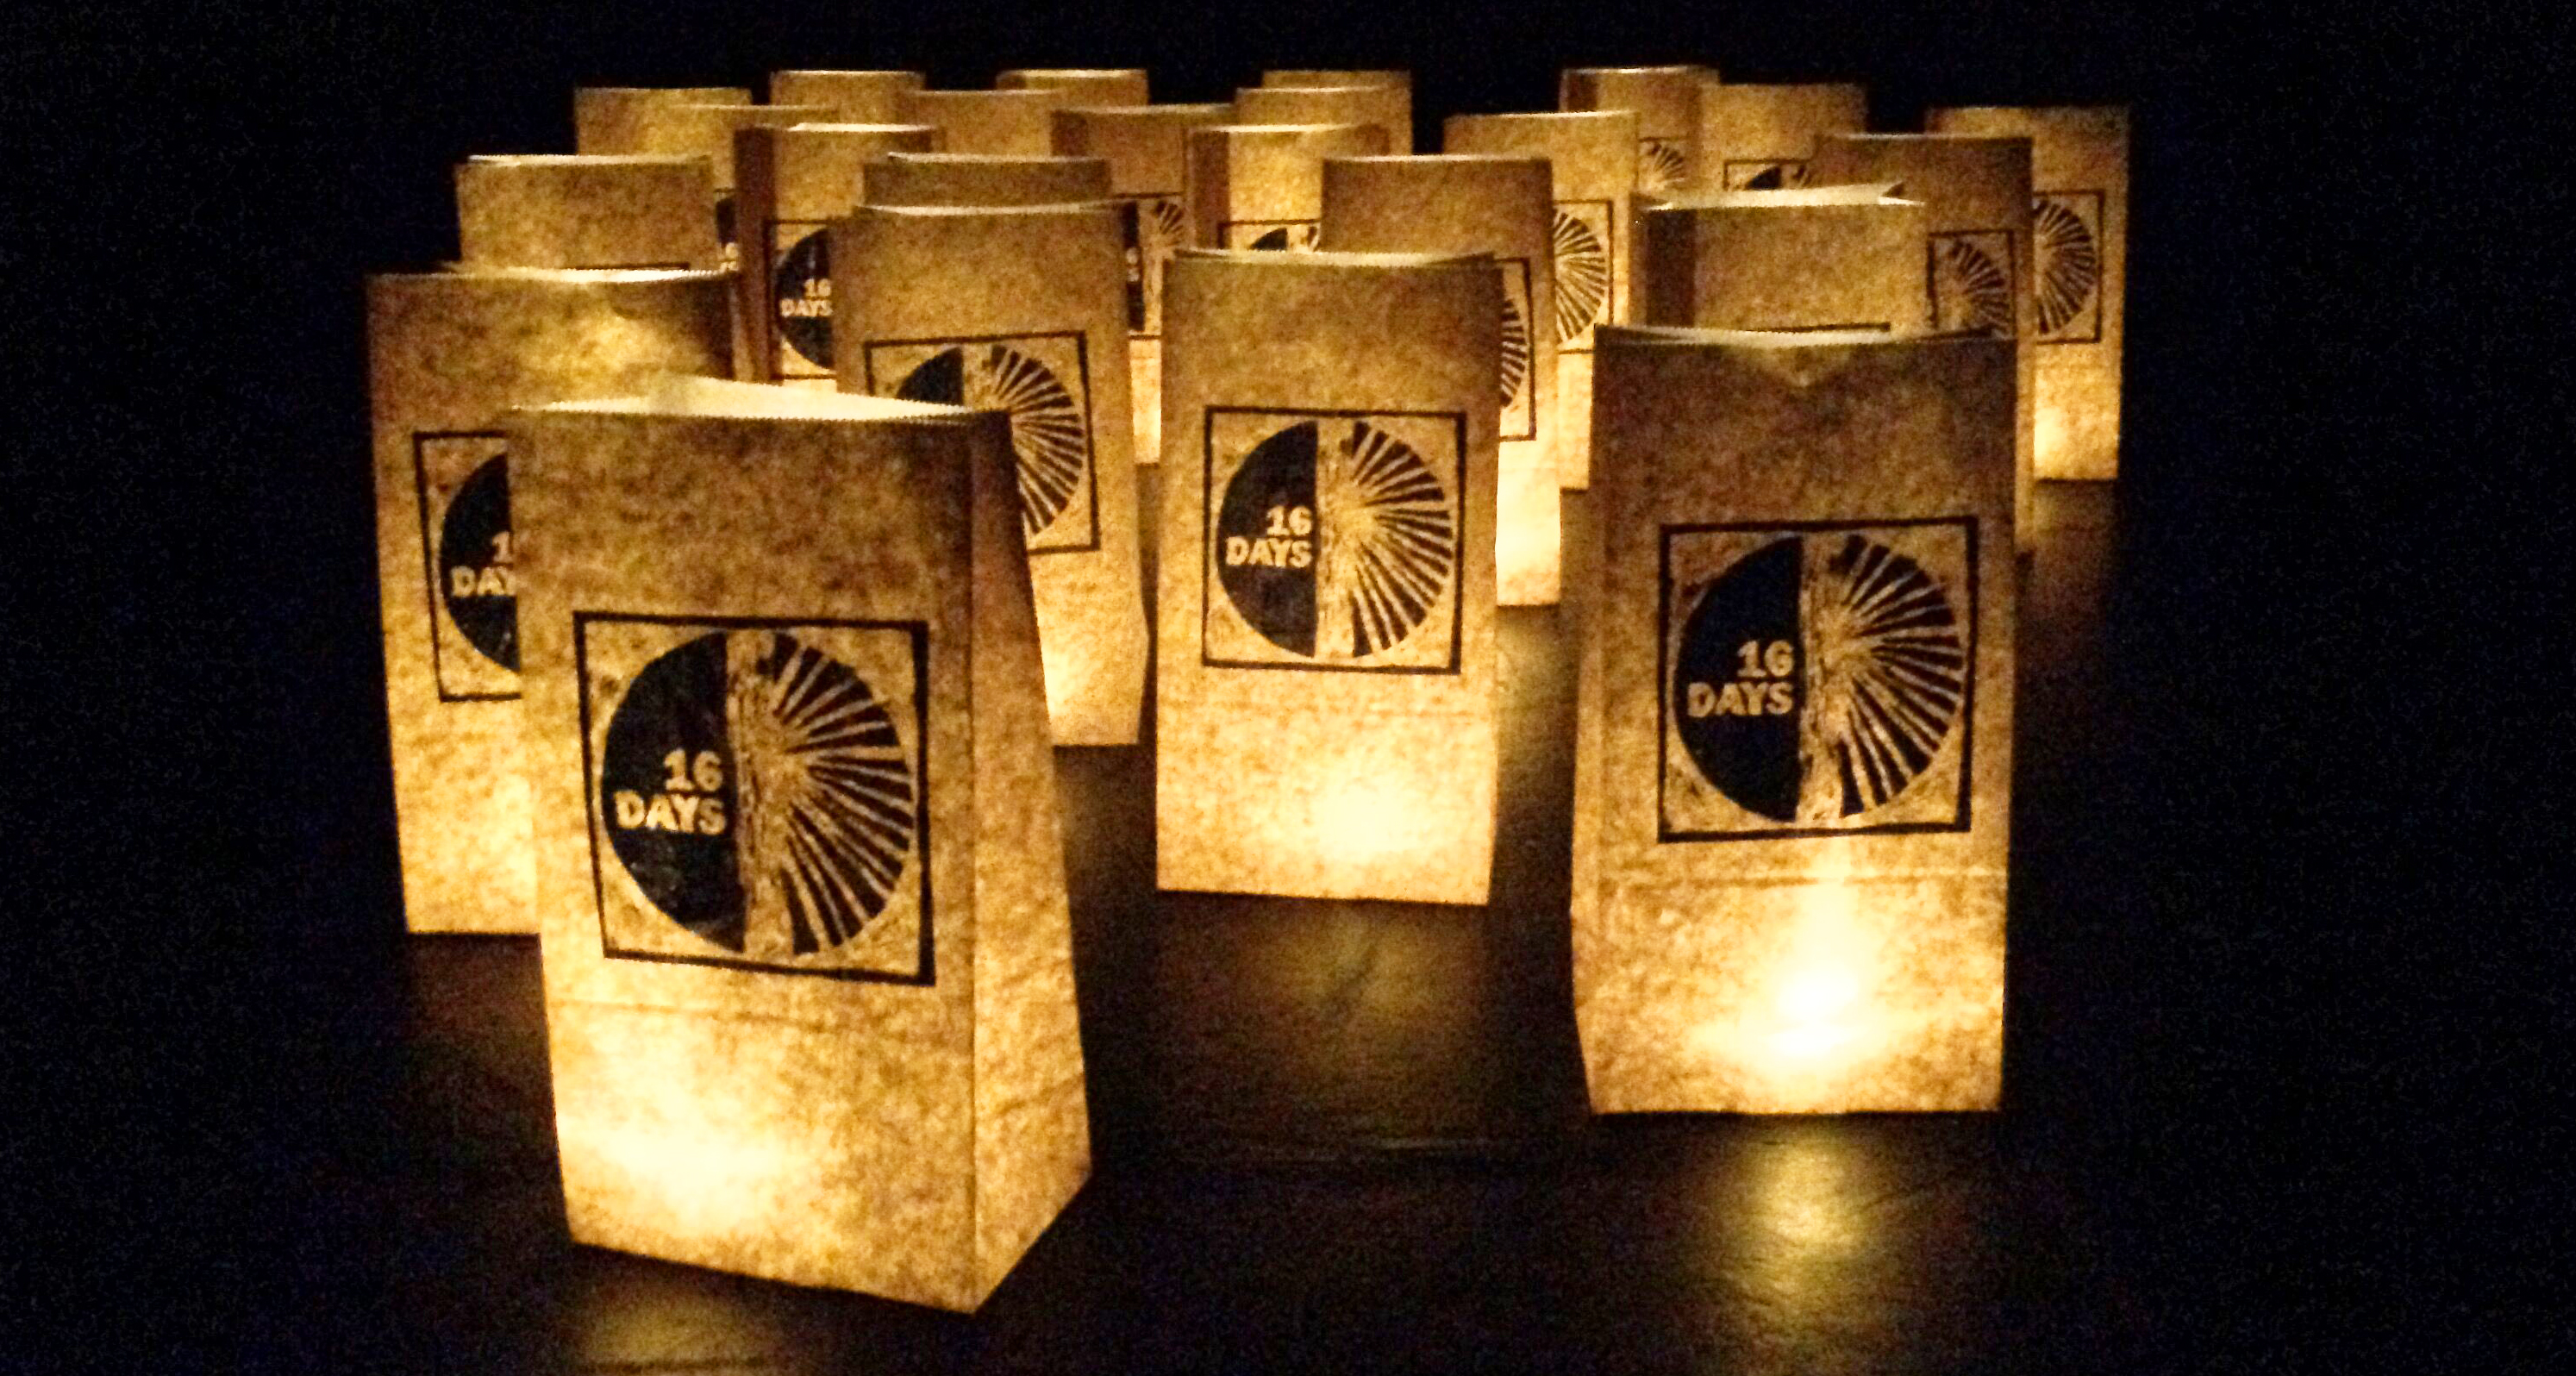 paper bag lanterns with 16 Days logo